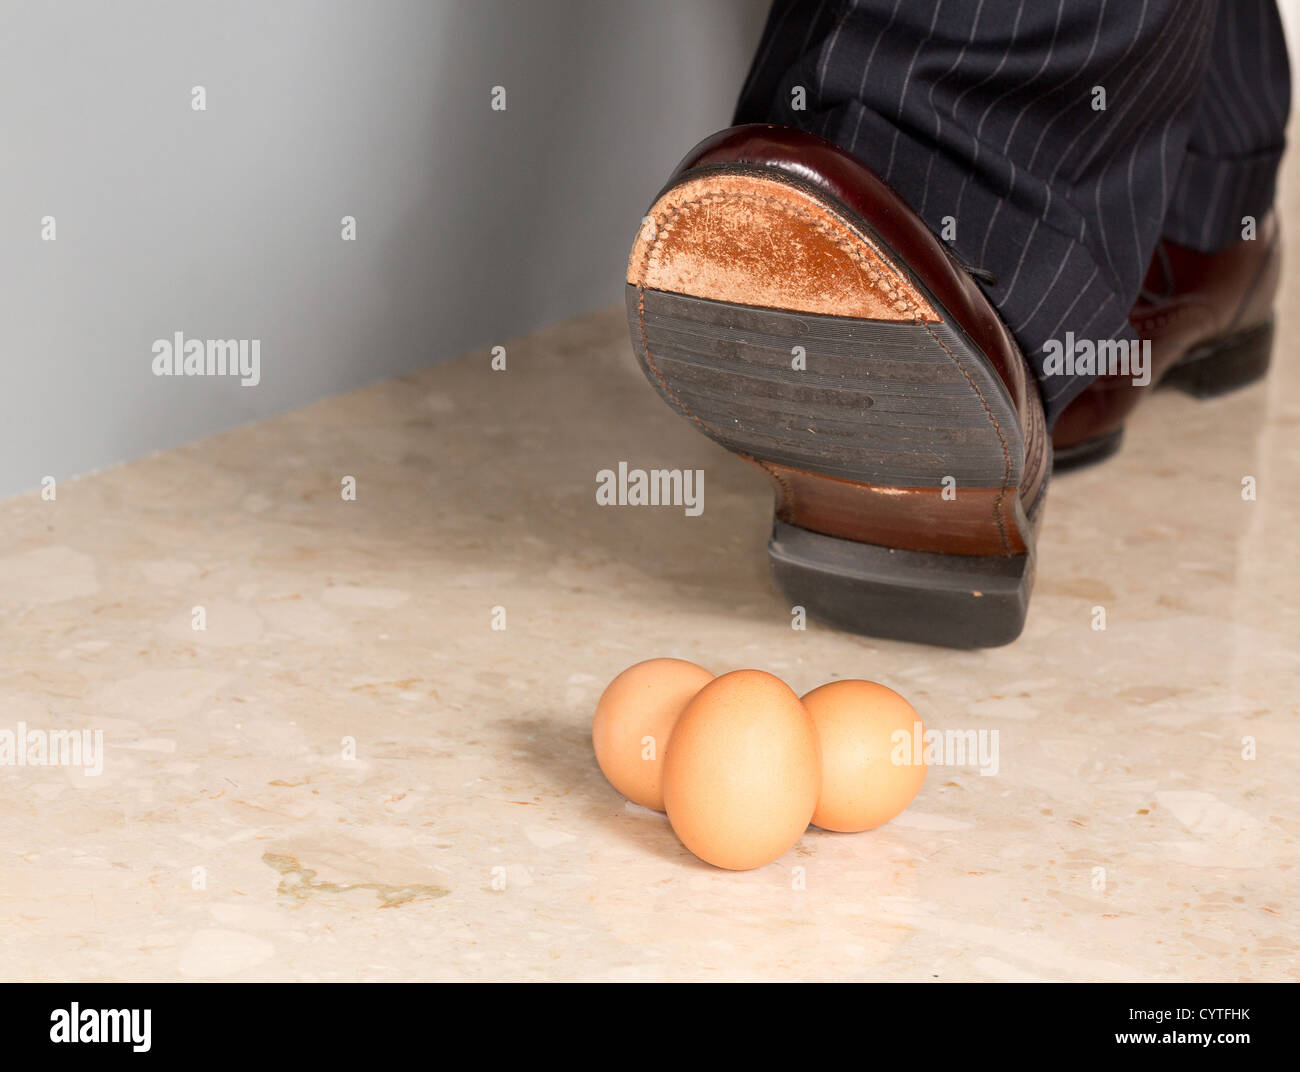 Male brown leather shoe in suit pants about to tread on three brown eggs - Stock Image